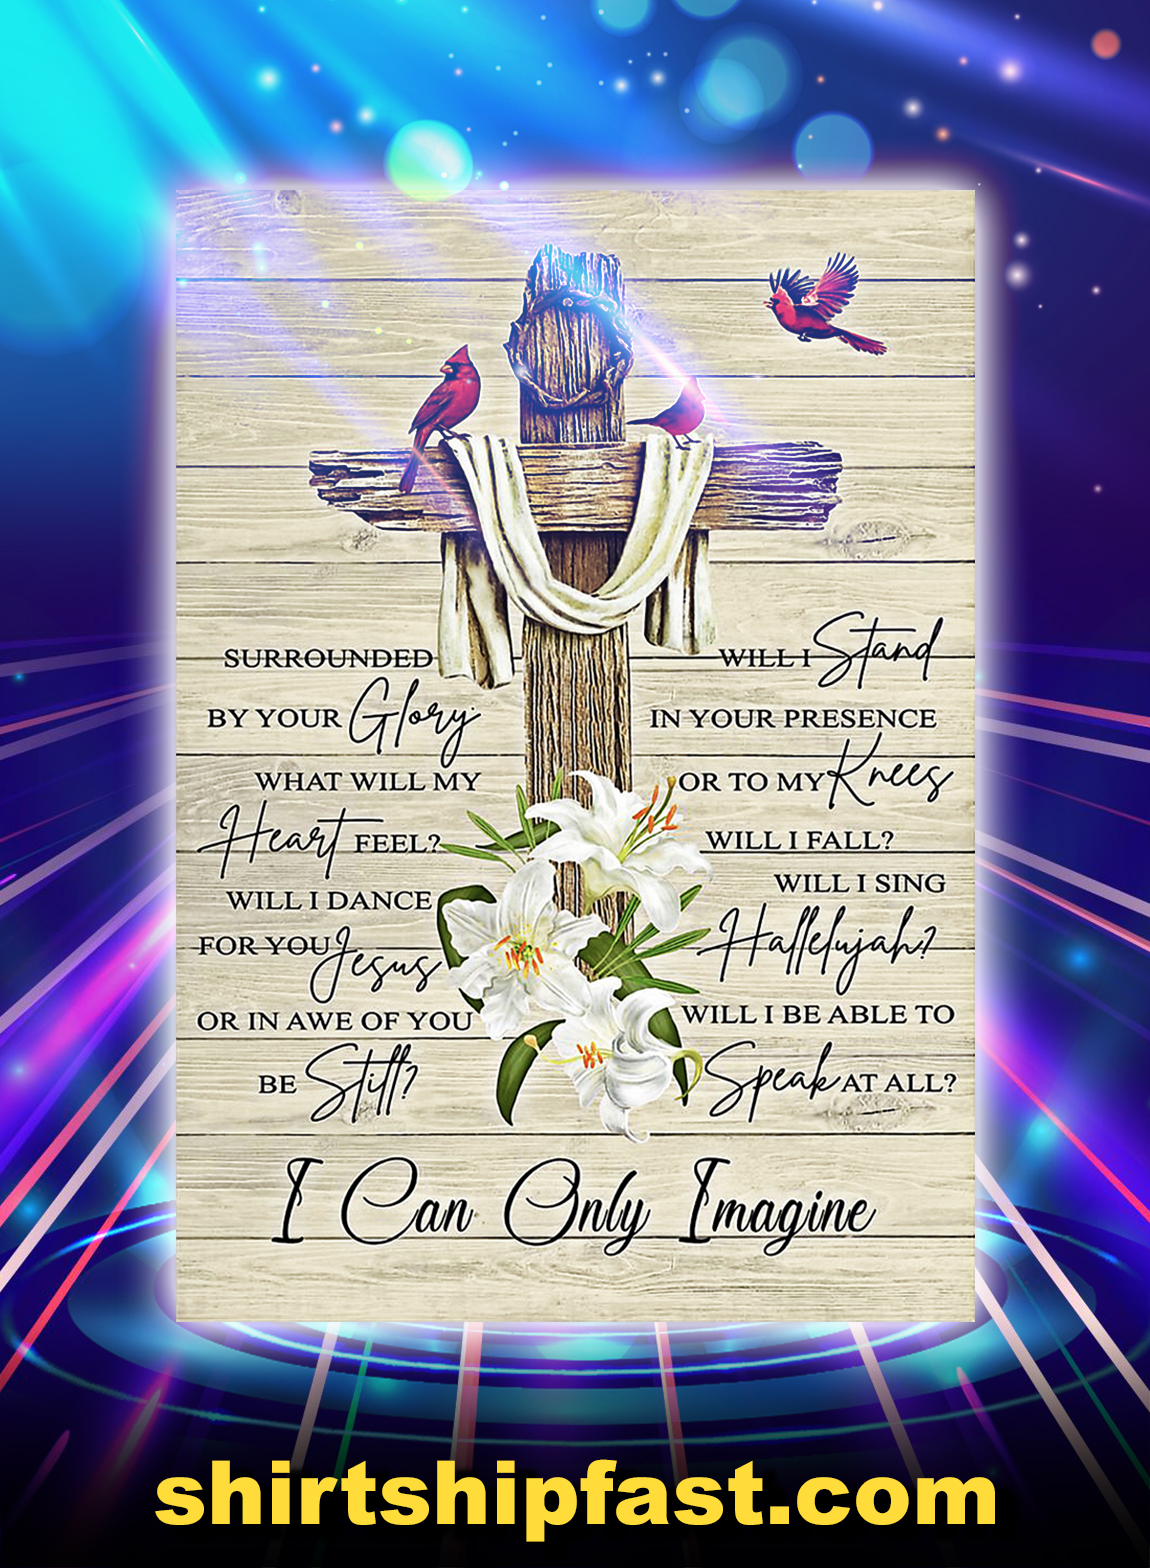 I can only imagine poster - A3